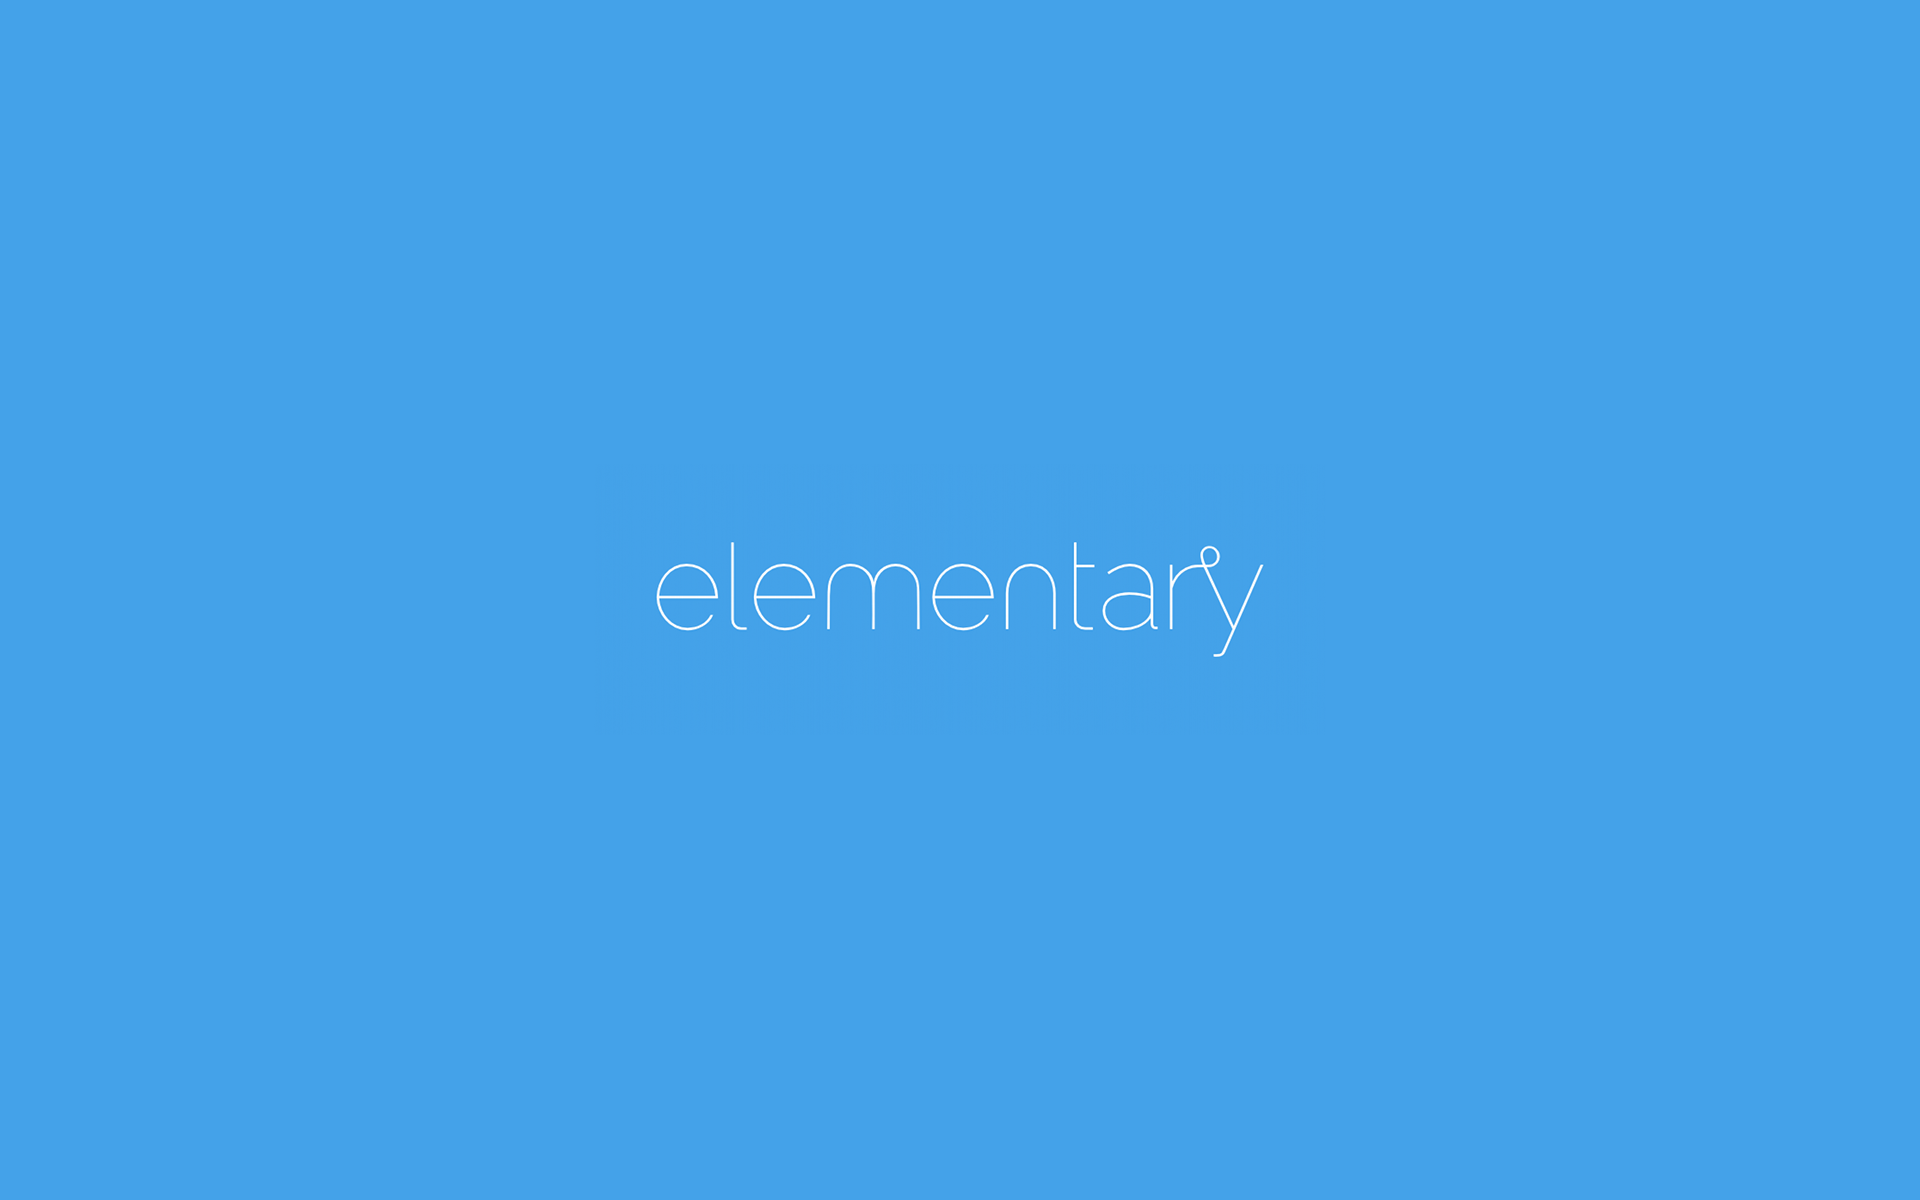 Elementary OS Wallpapers Ubuntronics 04png 1920x1200